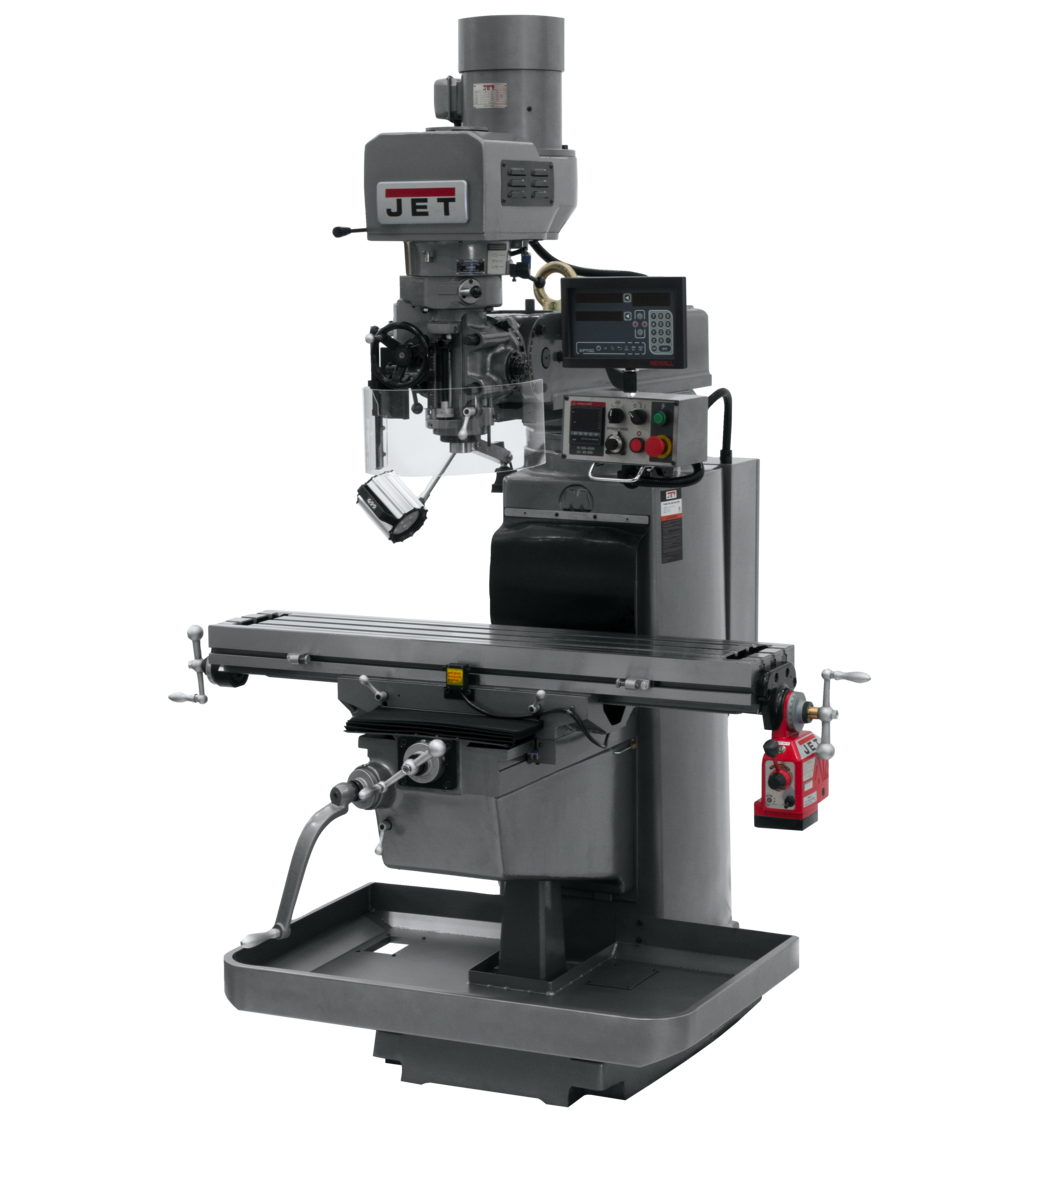 JTM-1050EVS2/230 Mill With Newall DP700 DRO With X-Axis Powerfeed